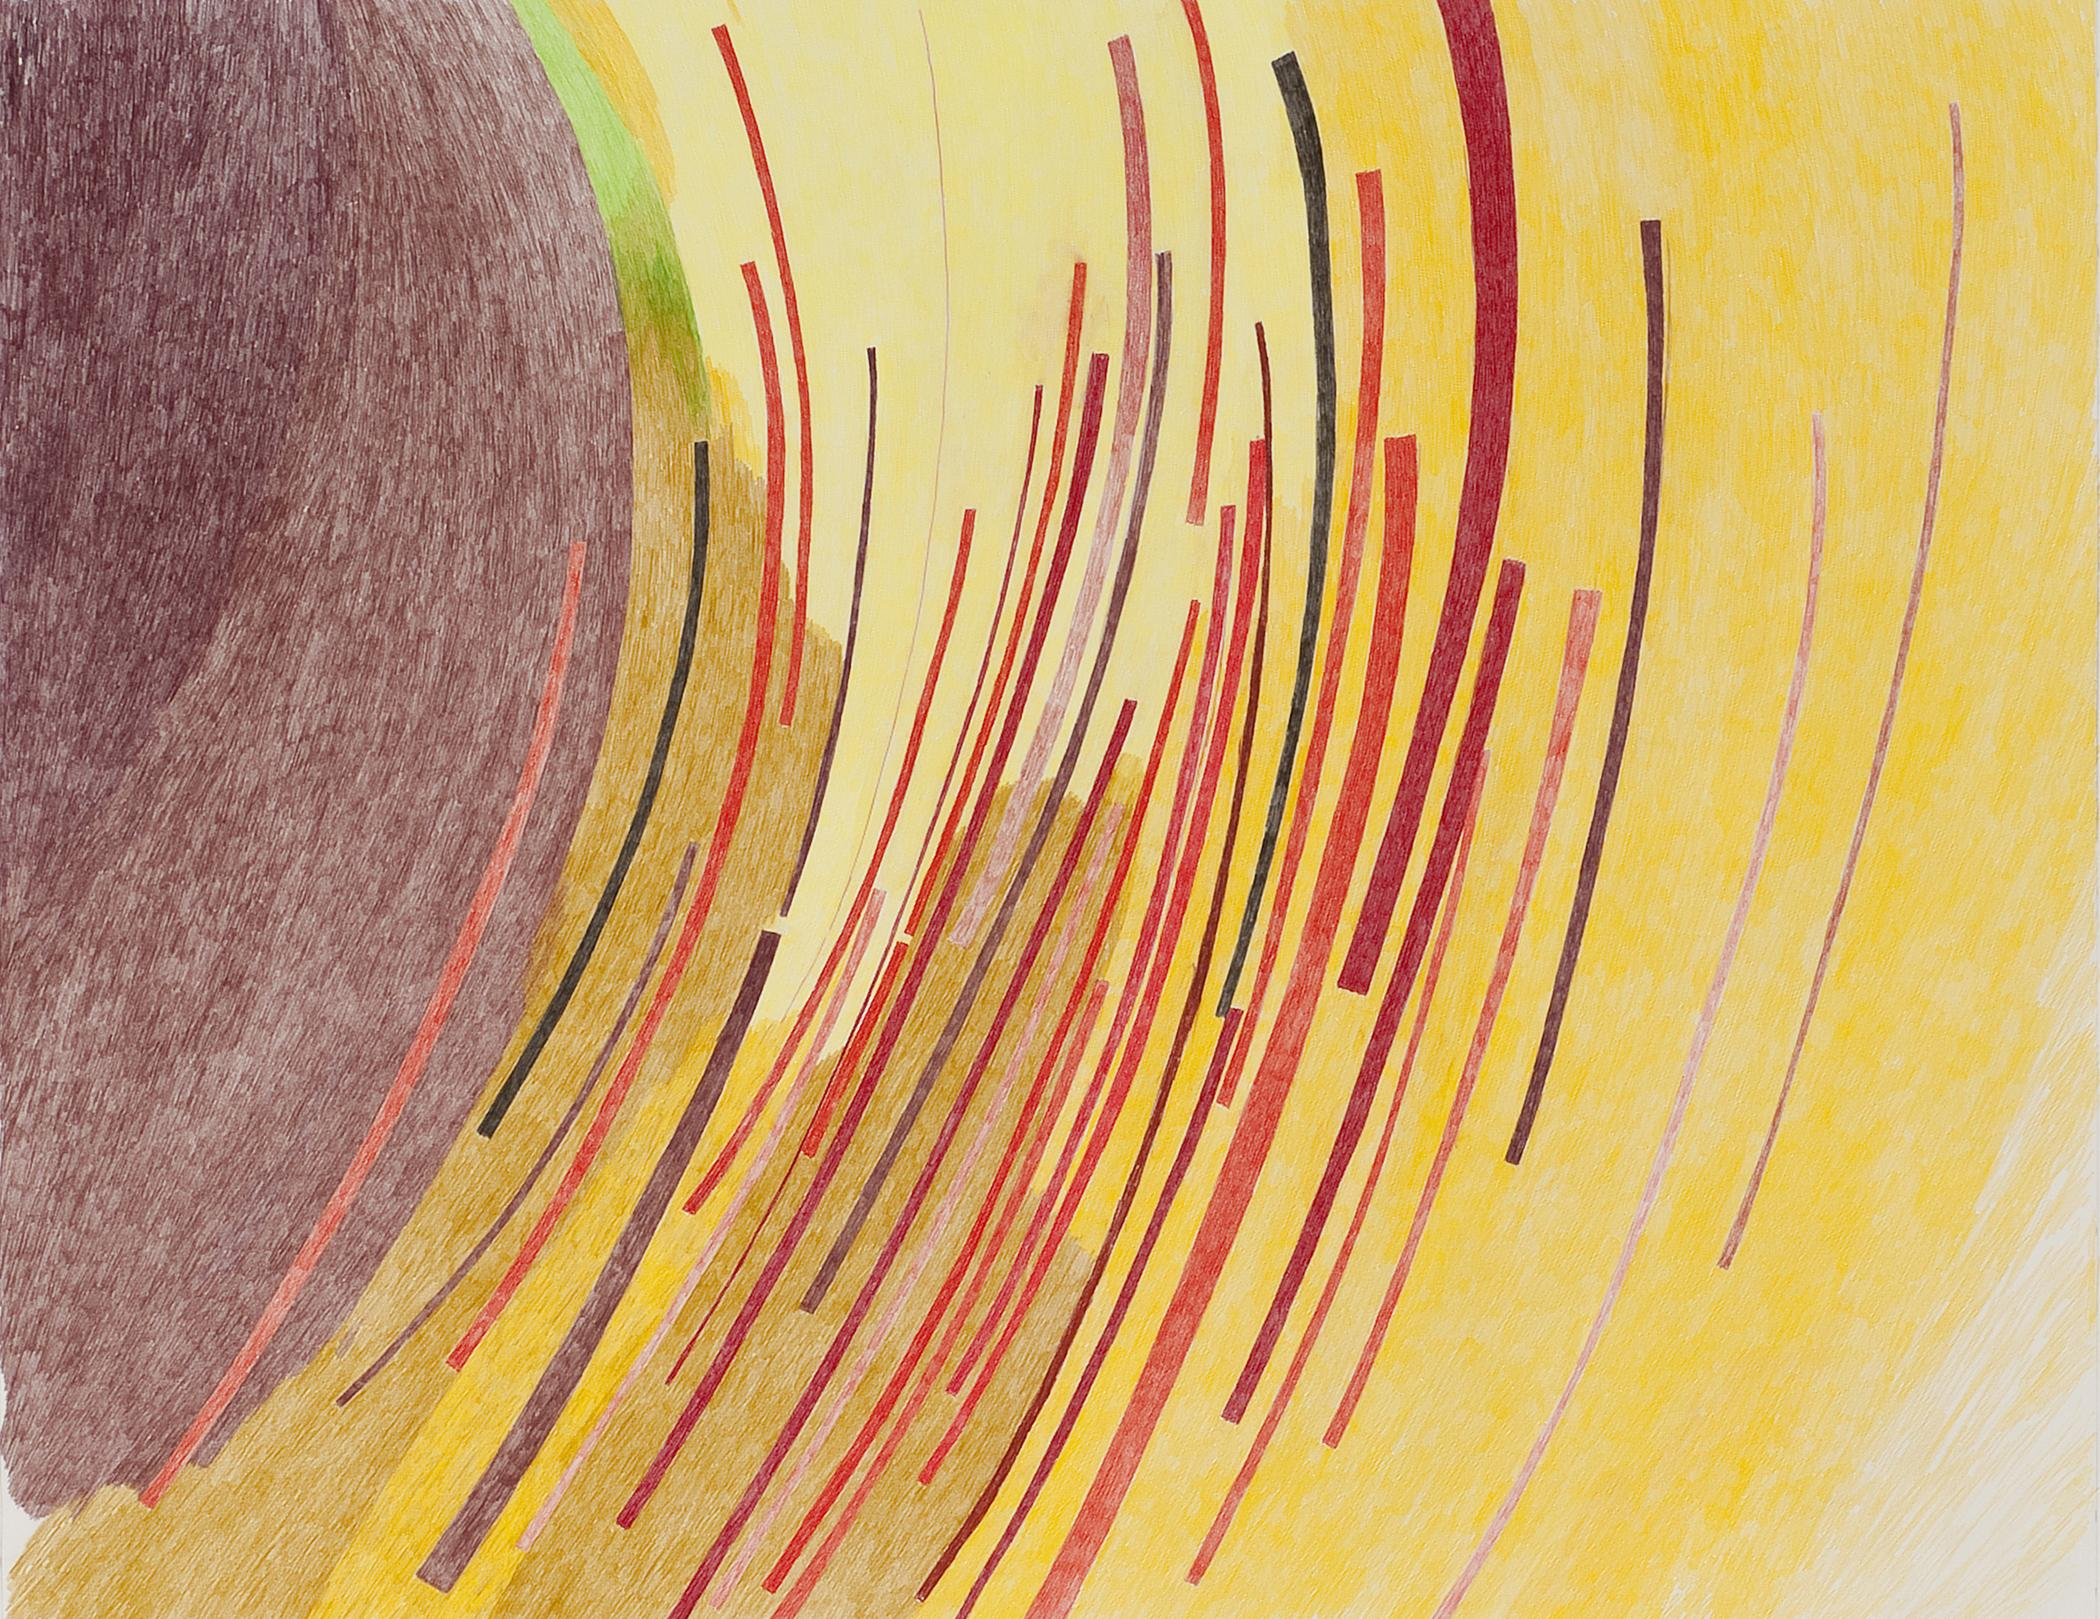 A drawing shows several slightly curved lines in various shades of red and pink on a yellow and brown background.